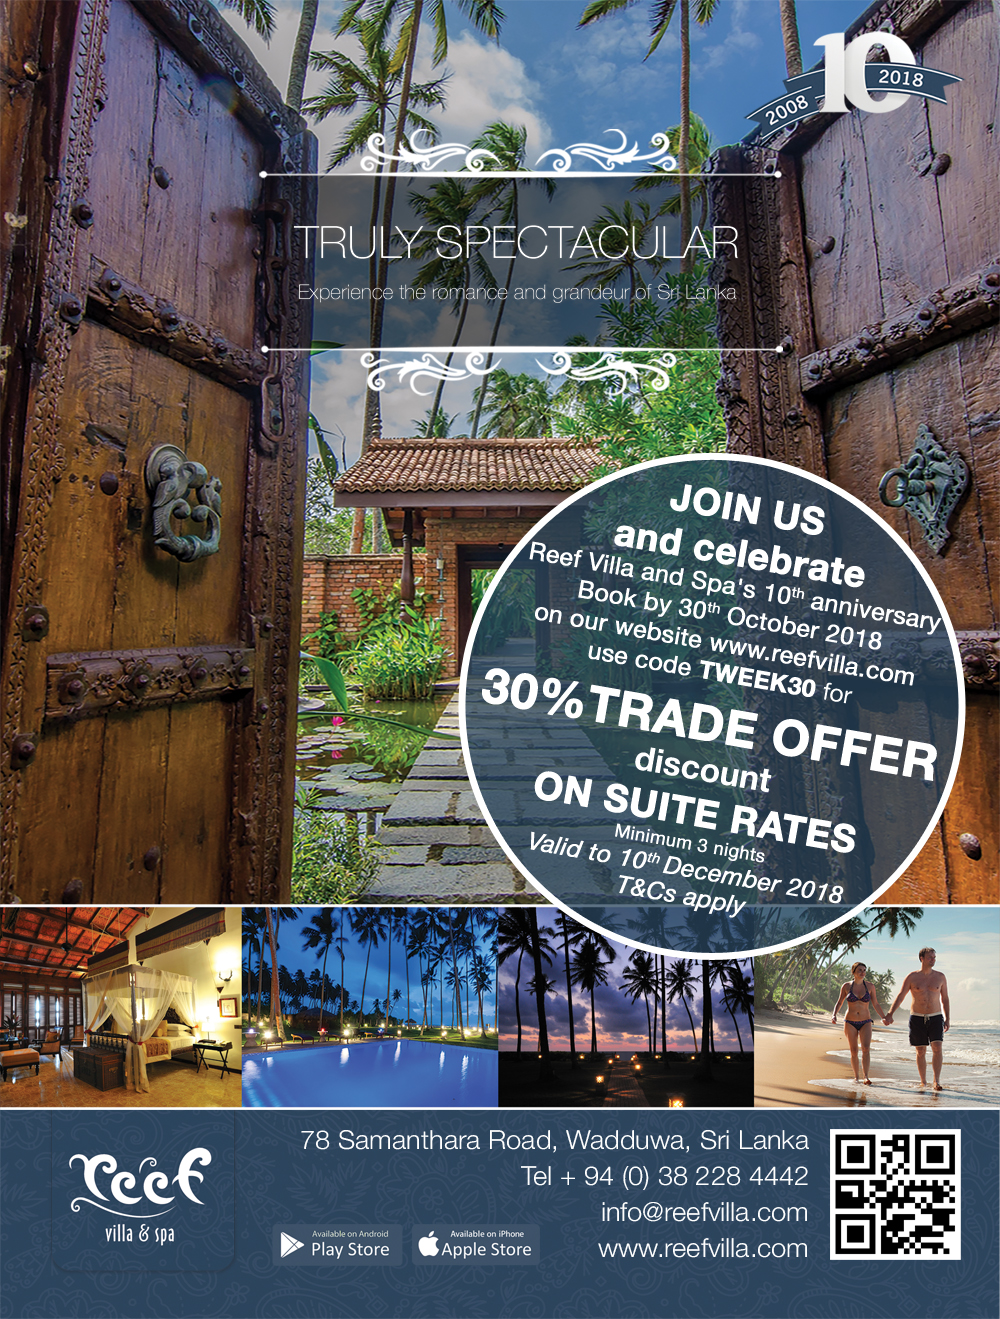 30% Trade offer Travel weekly